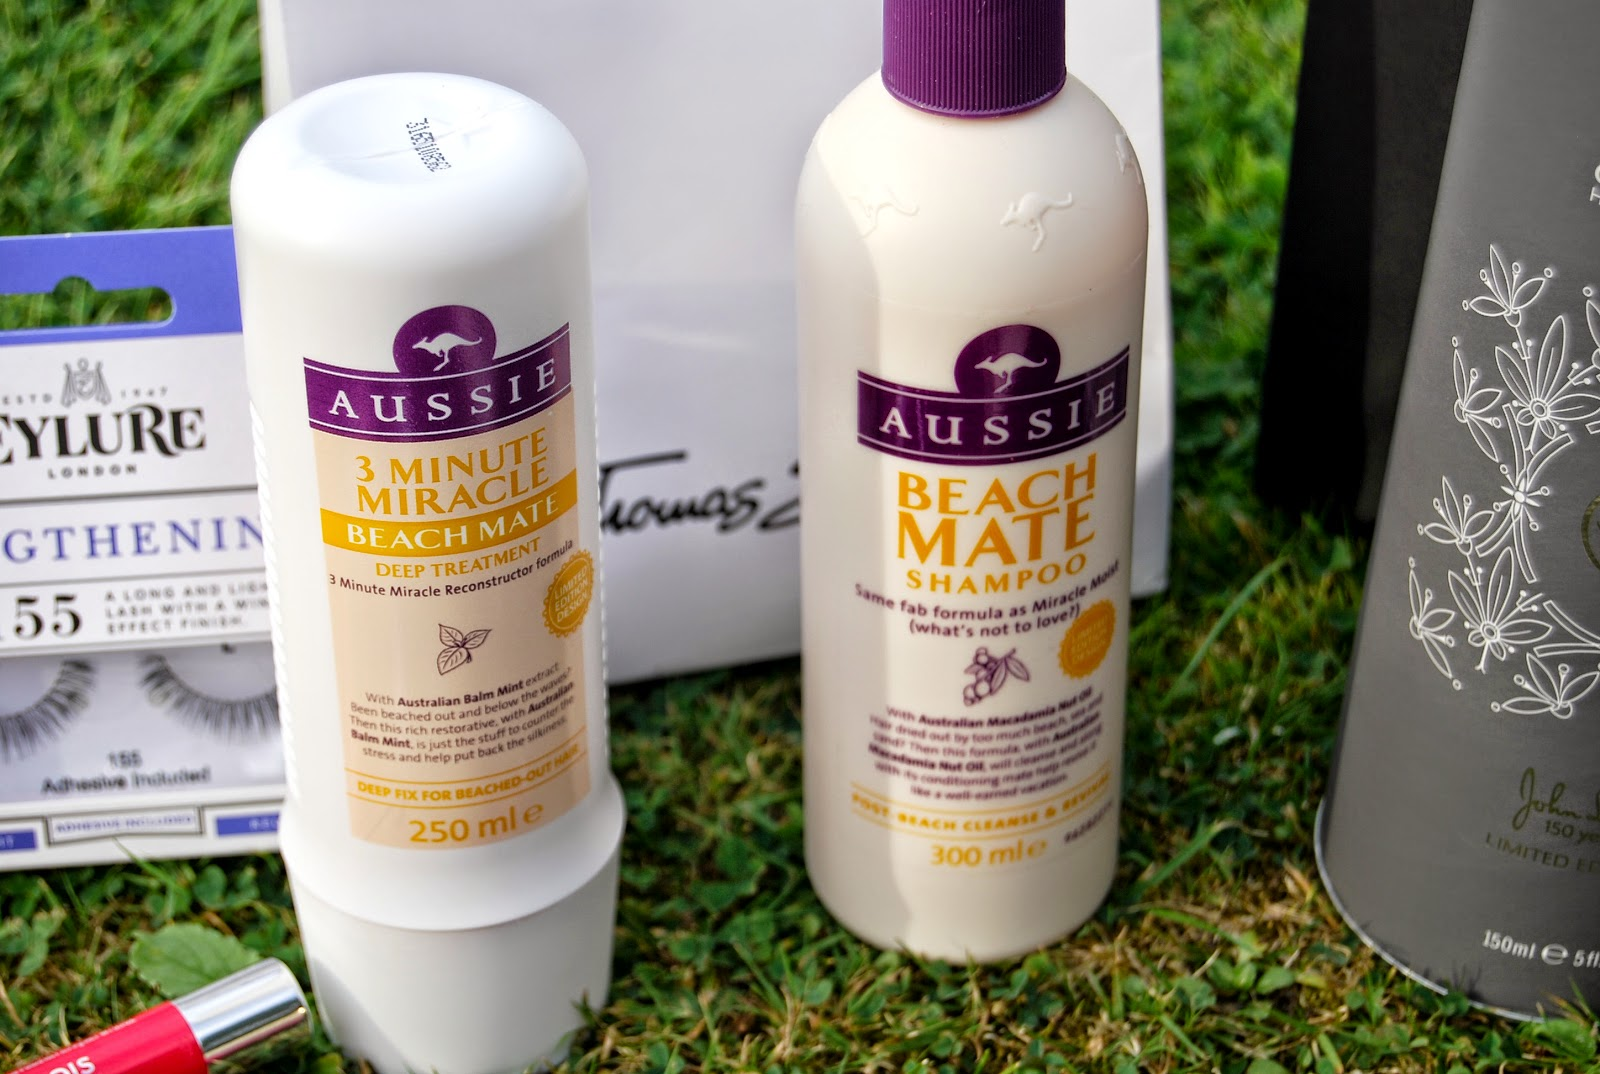 Aussie Beach Mate Shampoo & 3 Minute Miracle